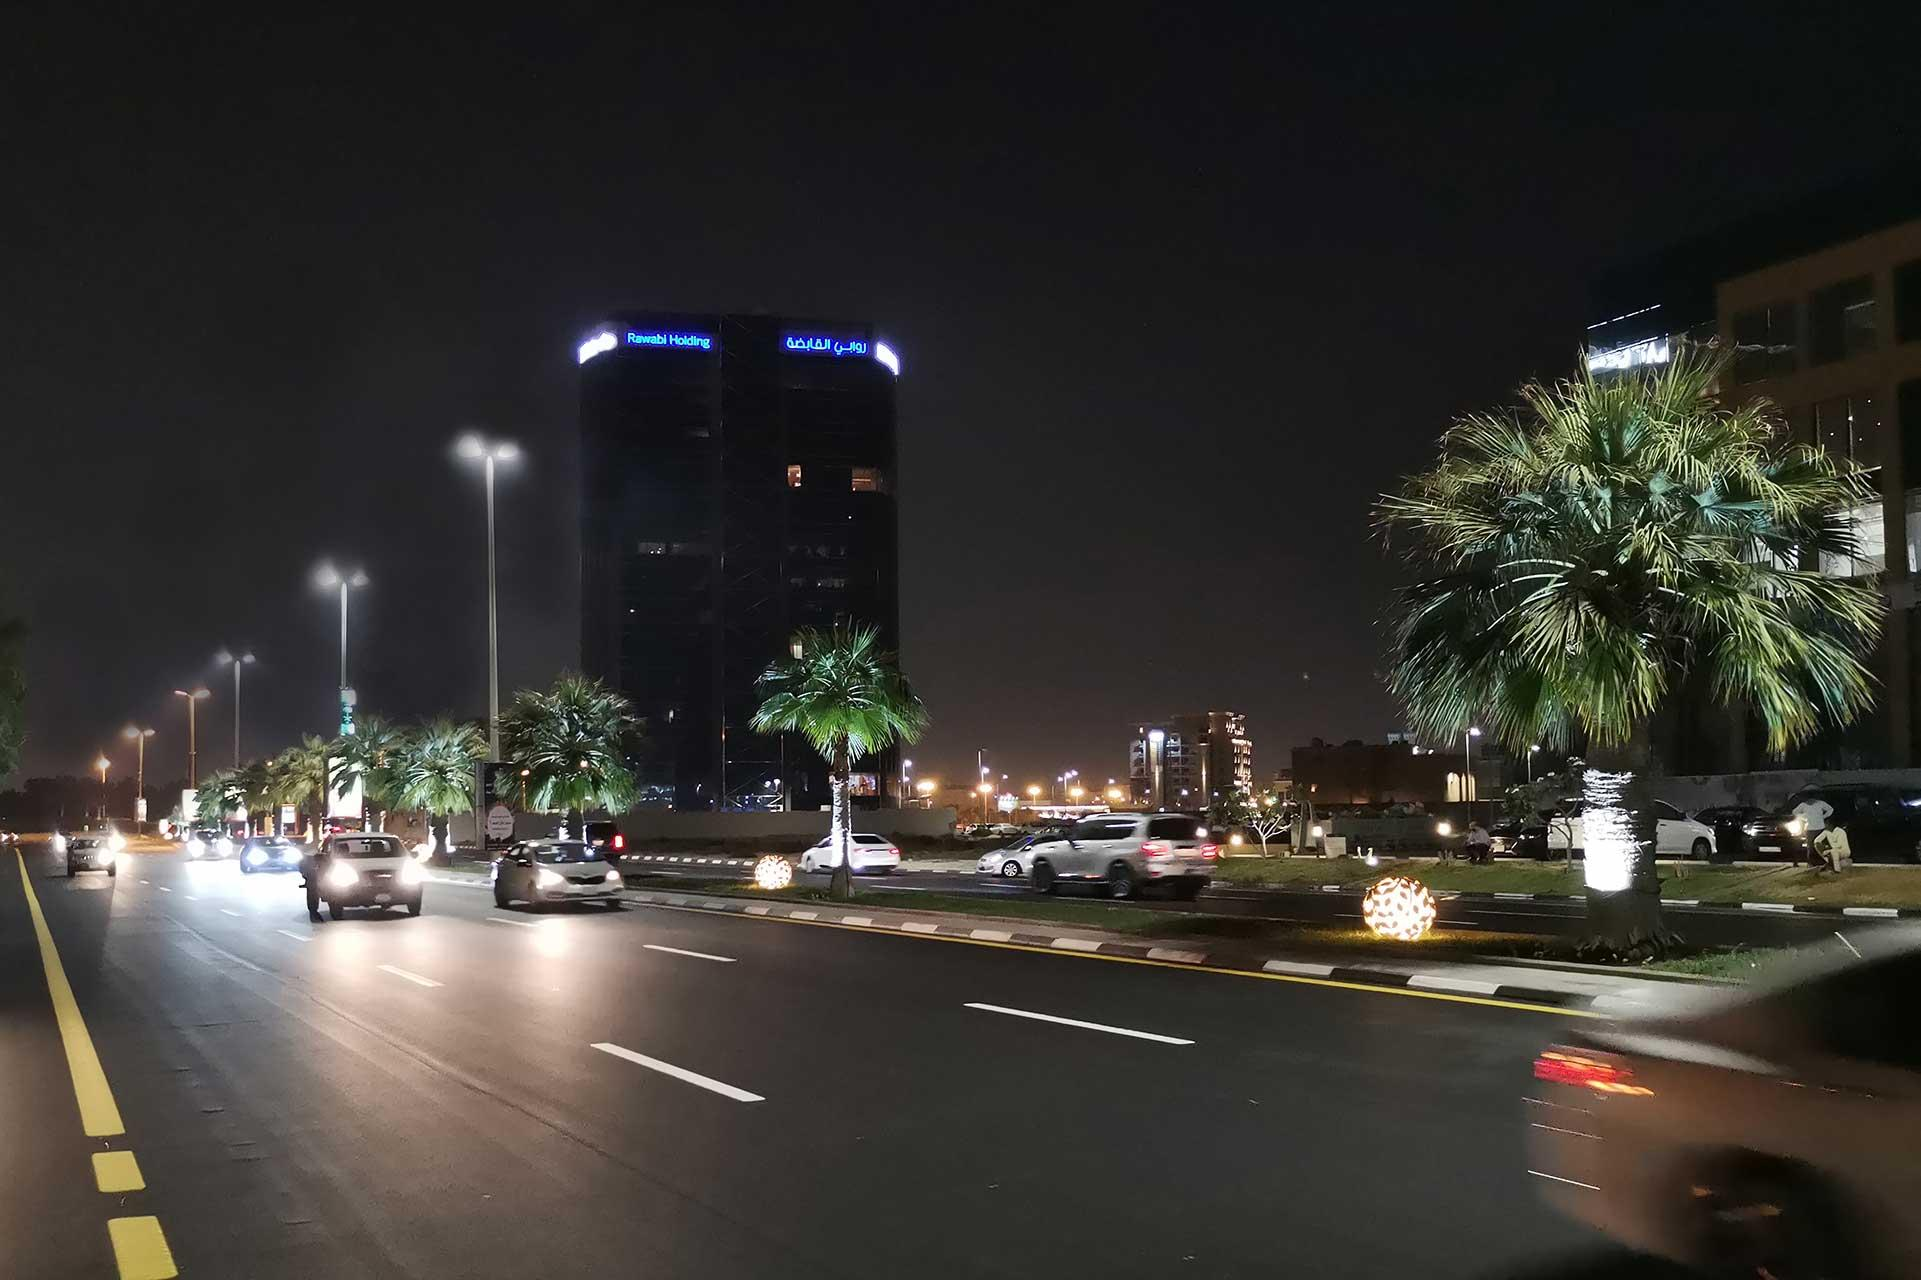 Avento lights the streets of Damman in Saudi Arabia ensuring a safe and sustainable environment